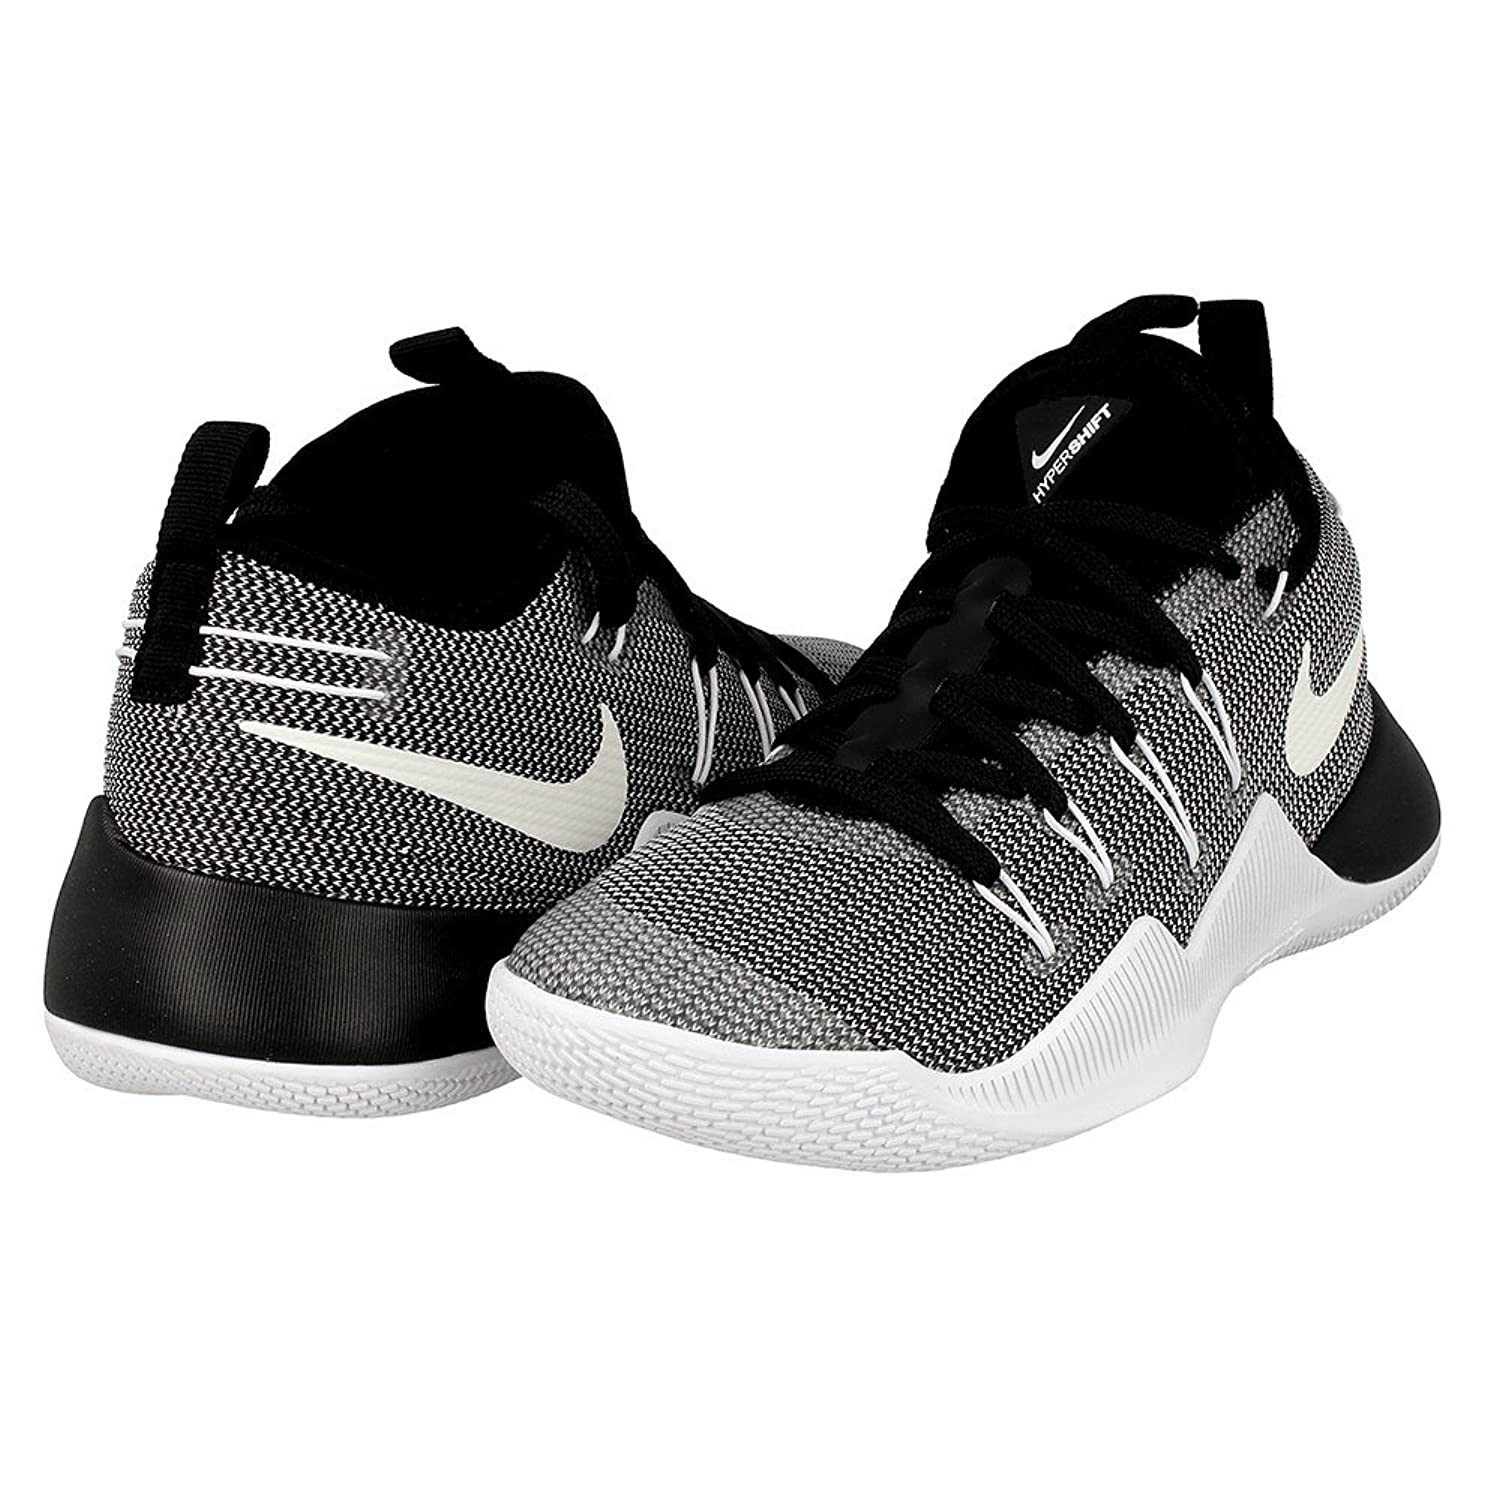 49bf2a373a34 ... cheapest amazon mens nike hypershift tb basketball shoe shoes cac6b  194ab